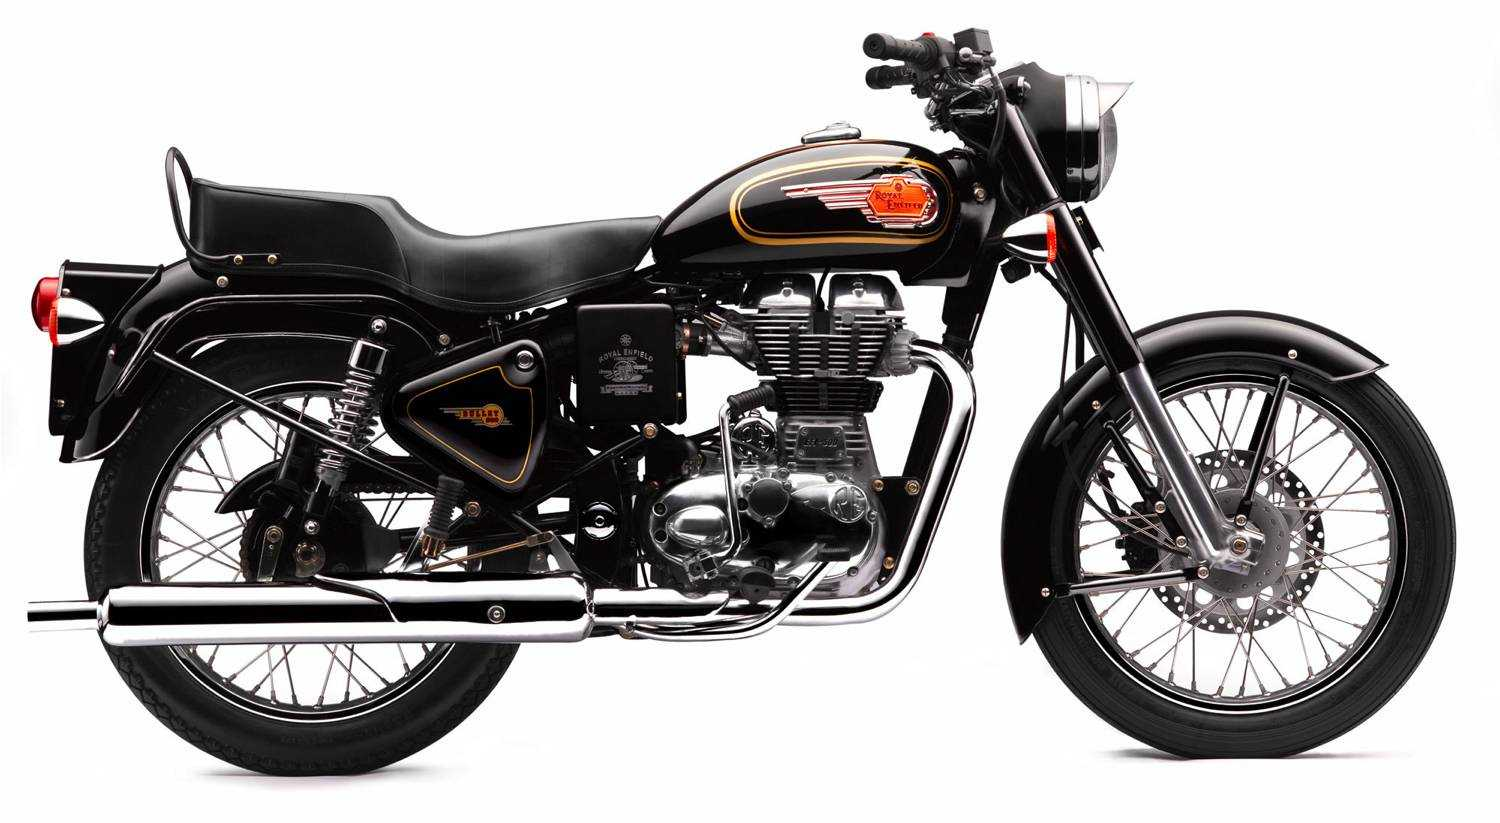 2012-RoyalEnfield-Bullet500B5-EFI1